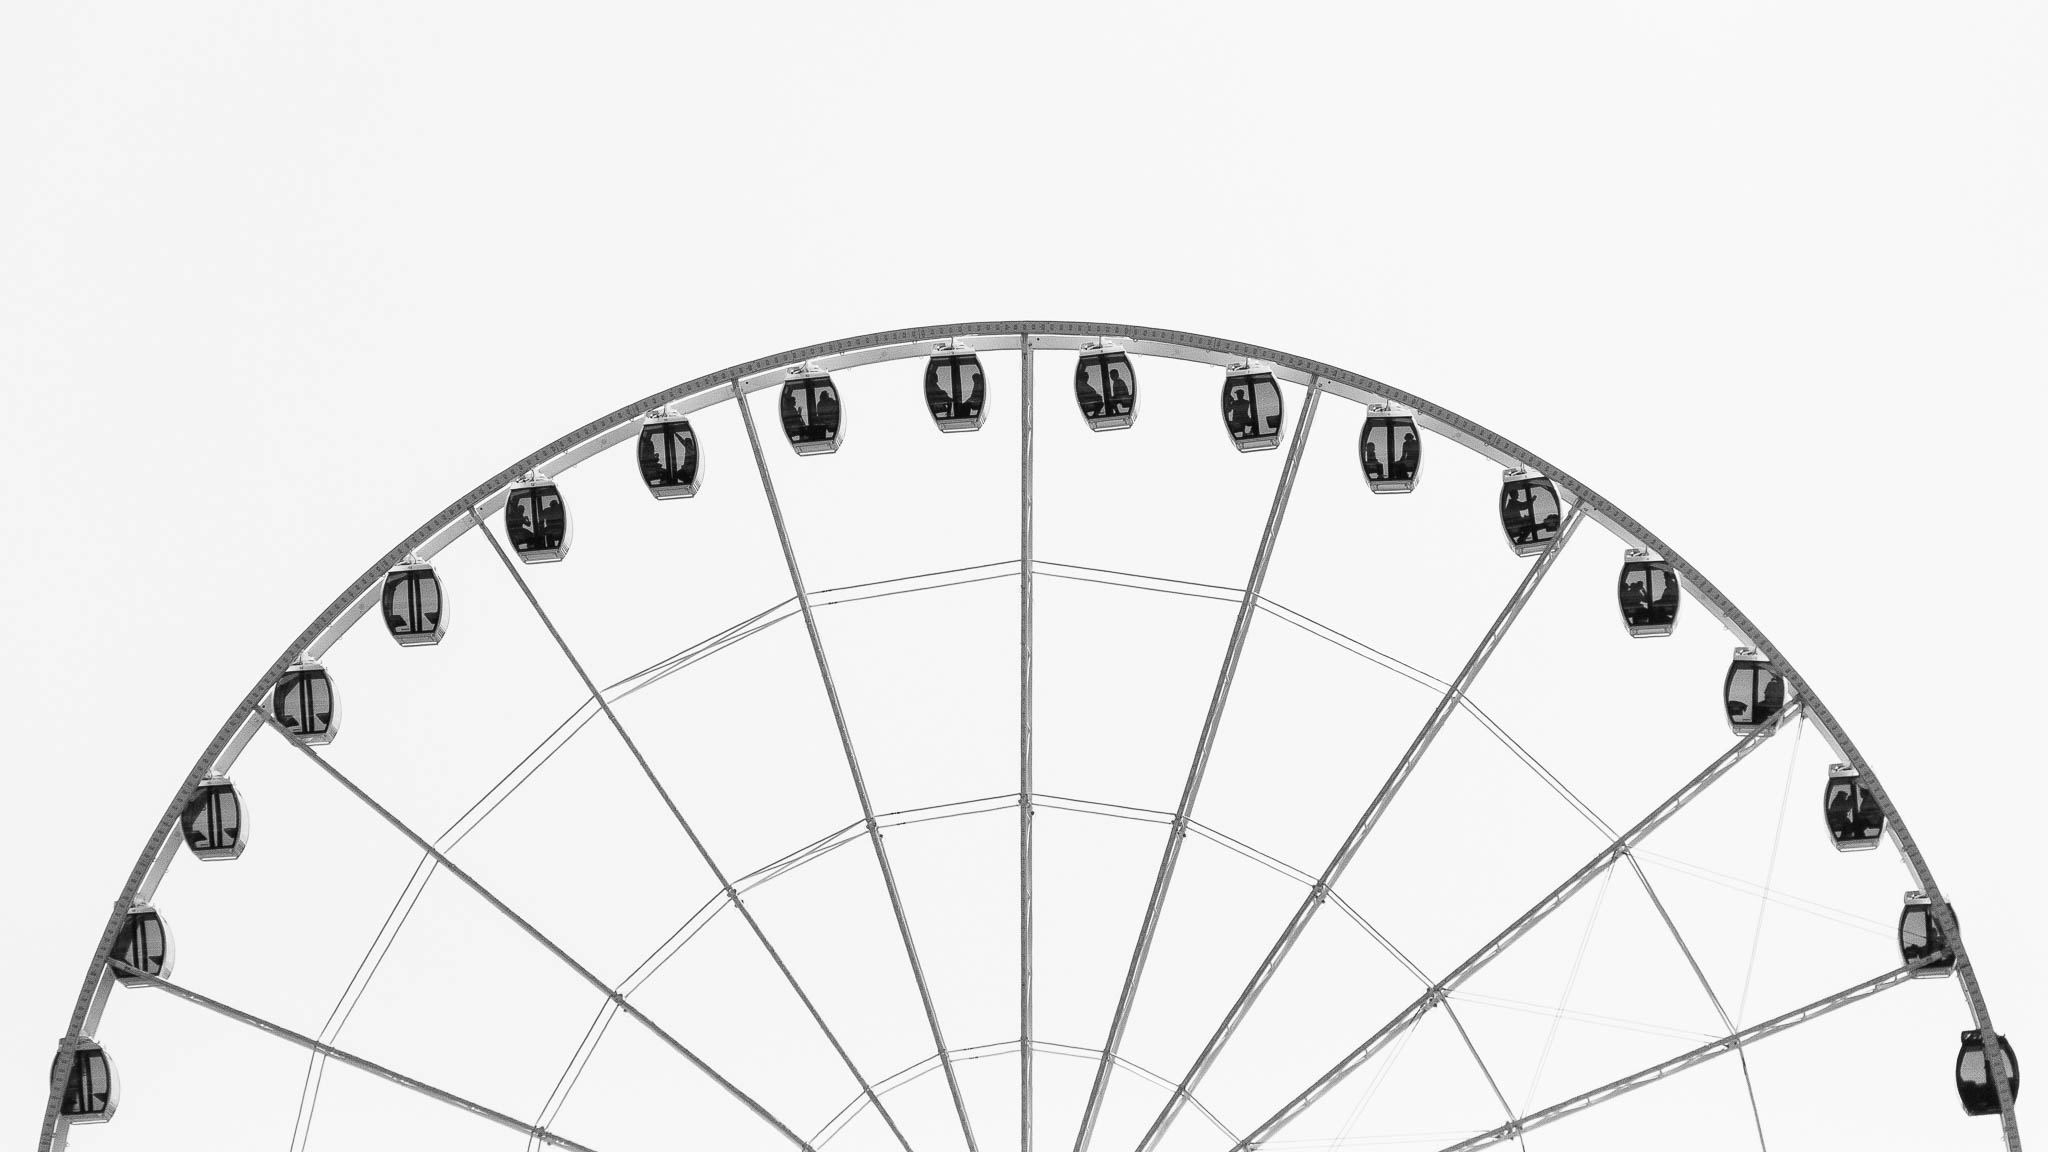 Symmetry of the Wheel